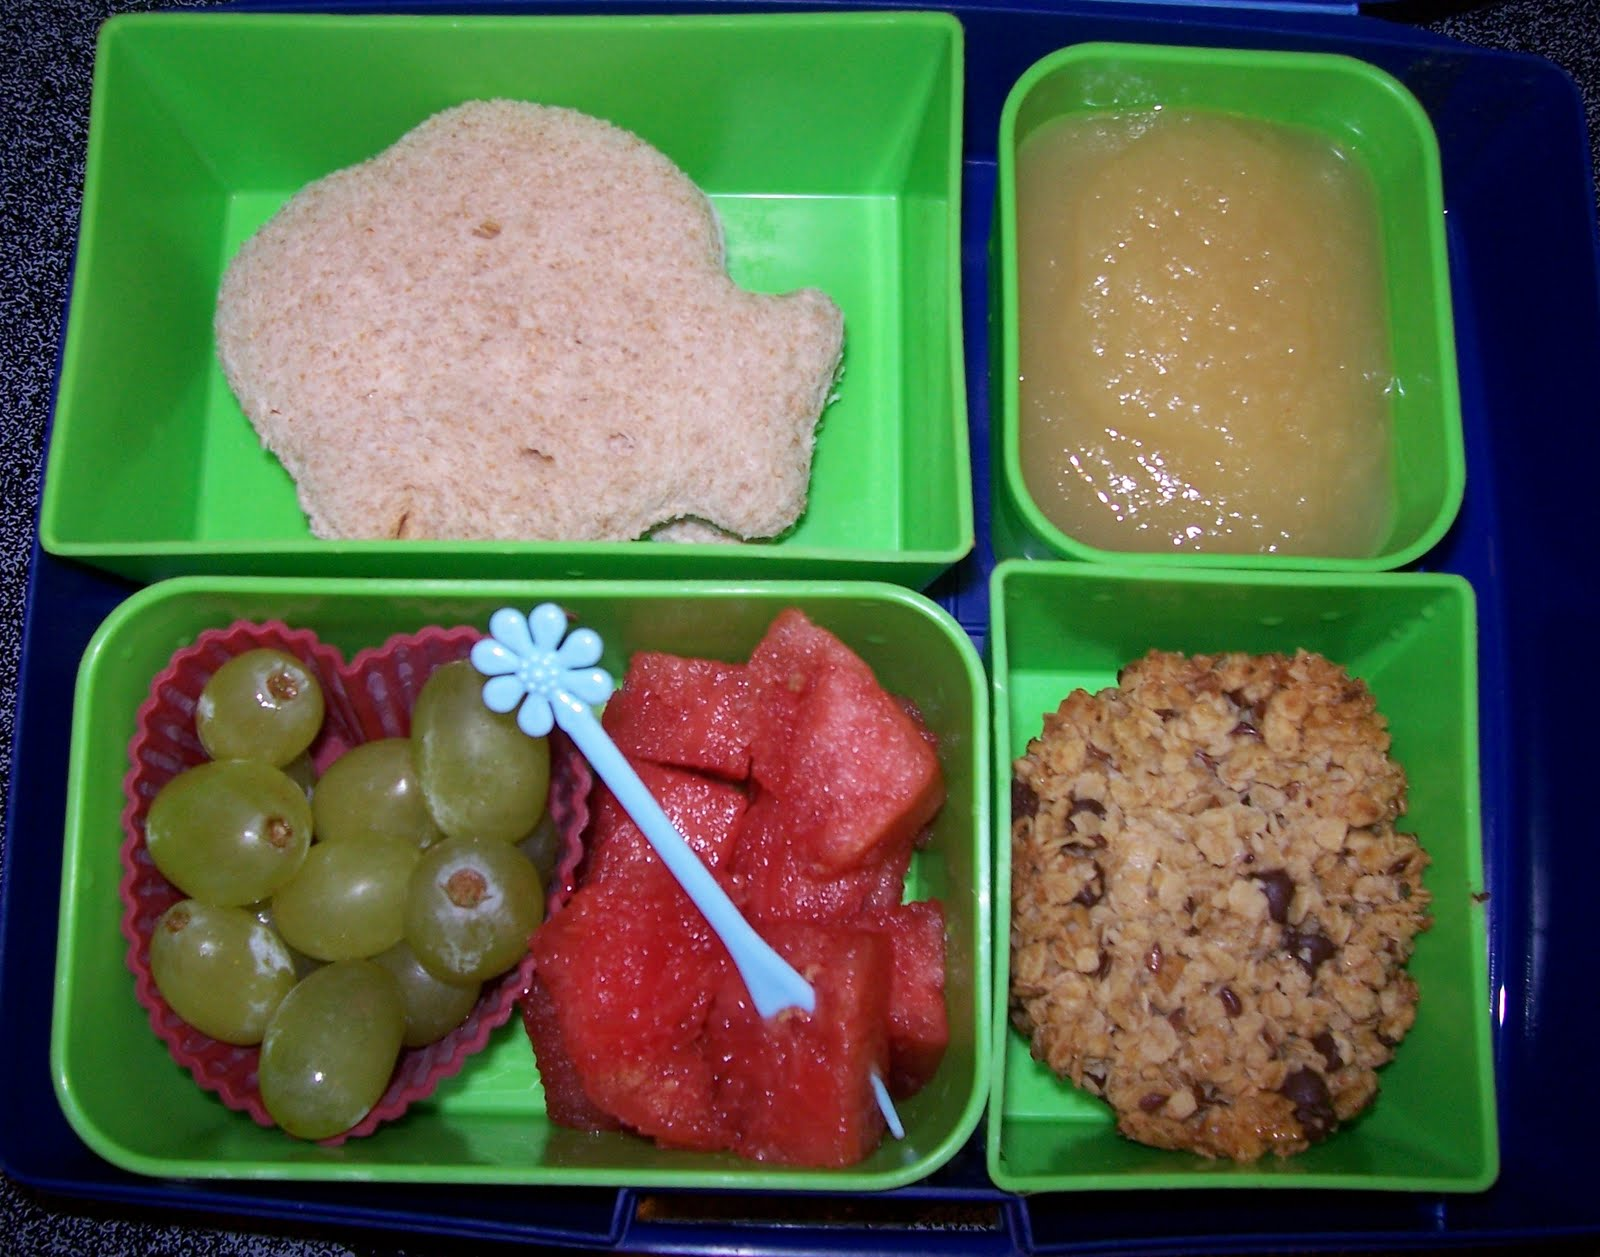 and mustard sandwich applesauce grapes watermelon and a granola cup